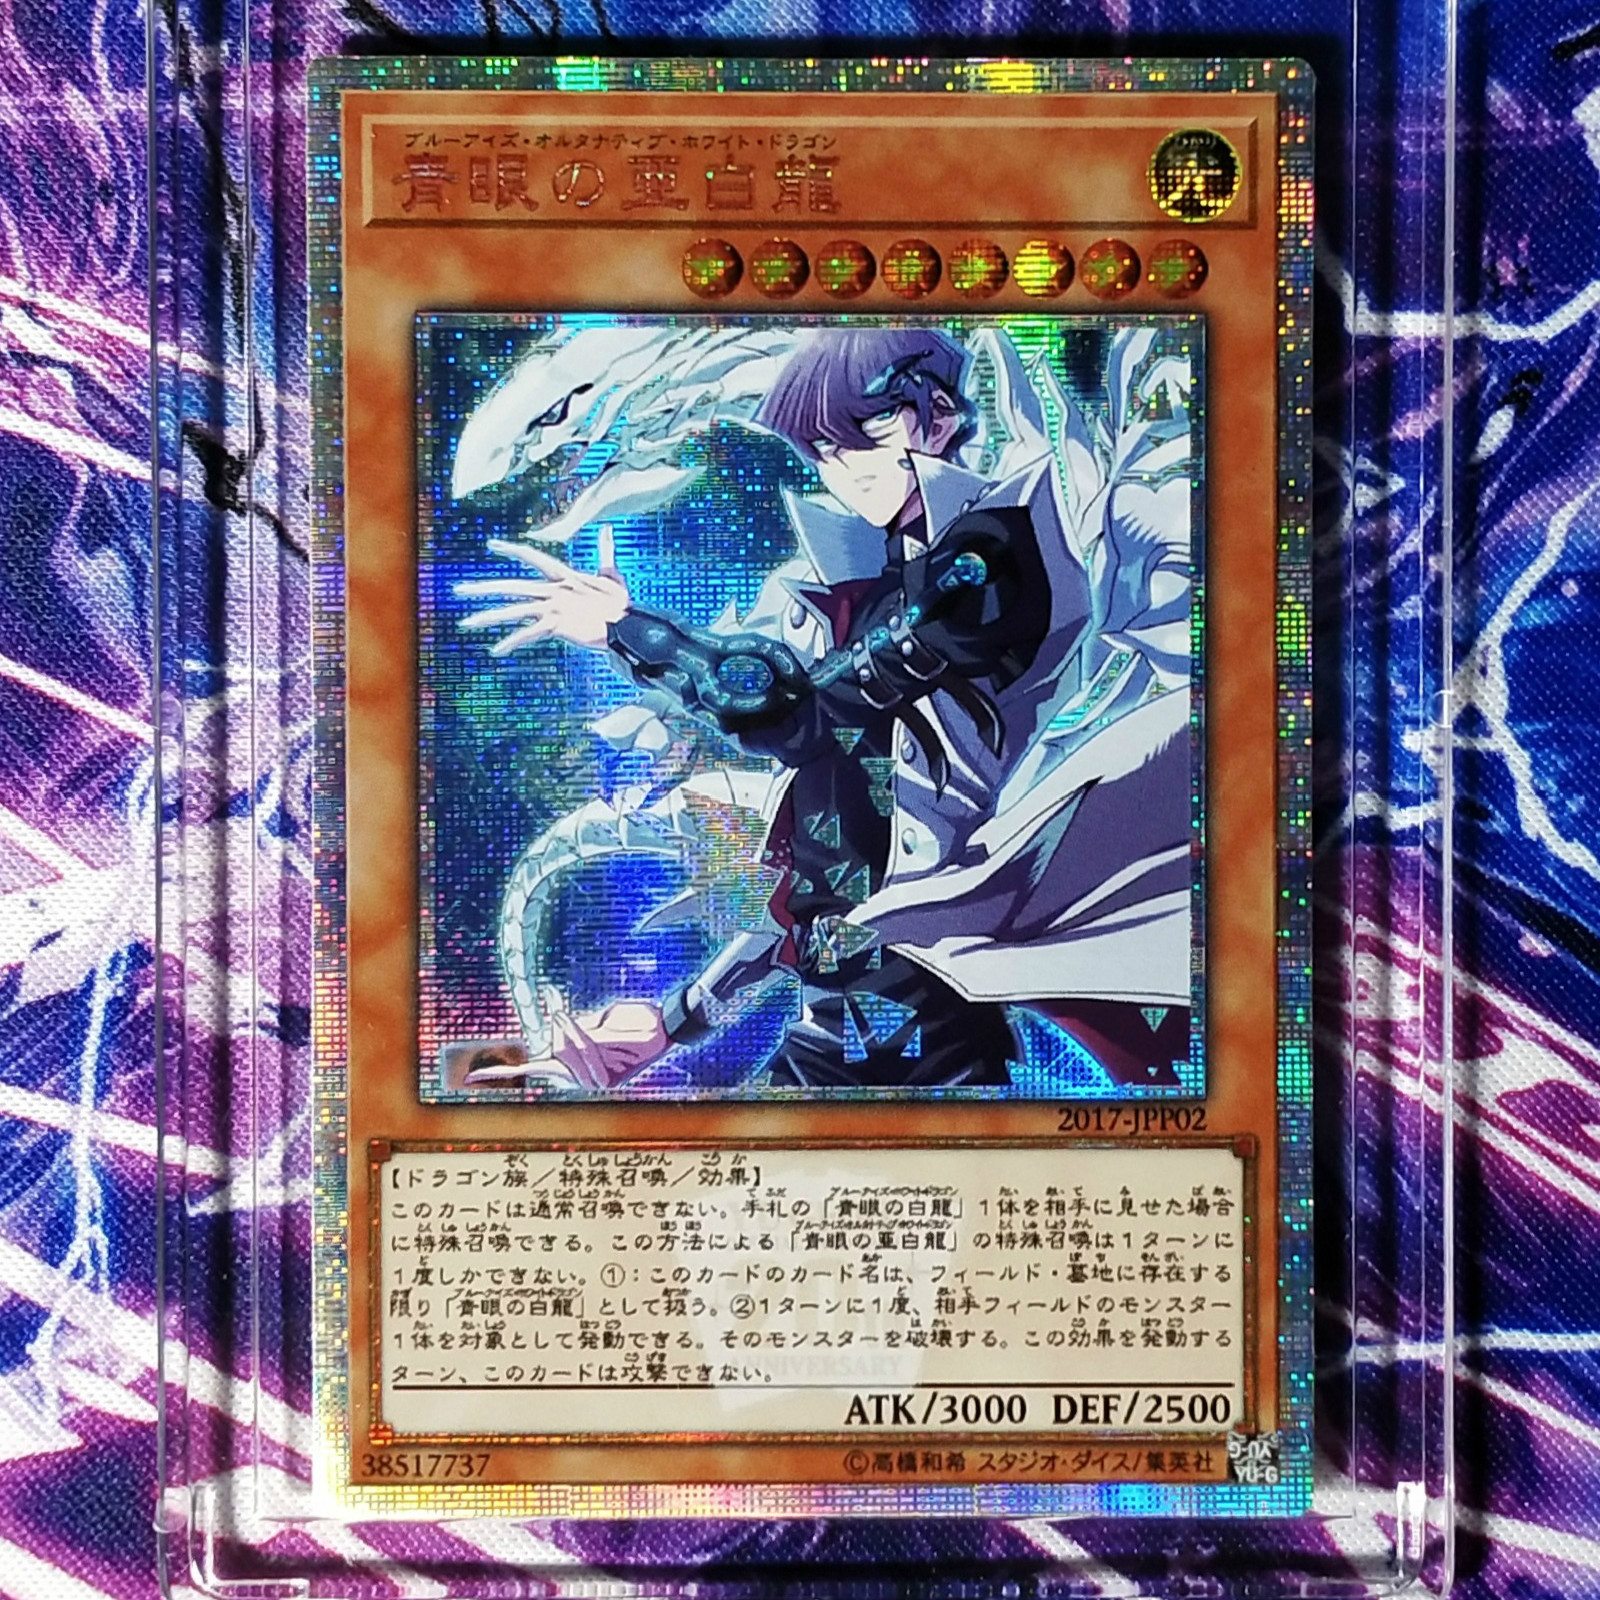 Yu Gi Oh Blue Eyes White Dragon Seto Kaiba DIY Colorful Toys Hobbies Hobby Collectibles Game Collection Anime Cards